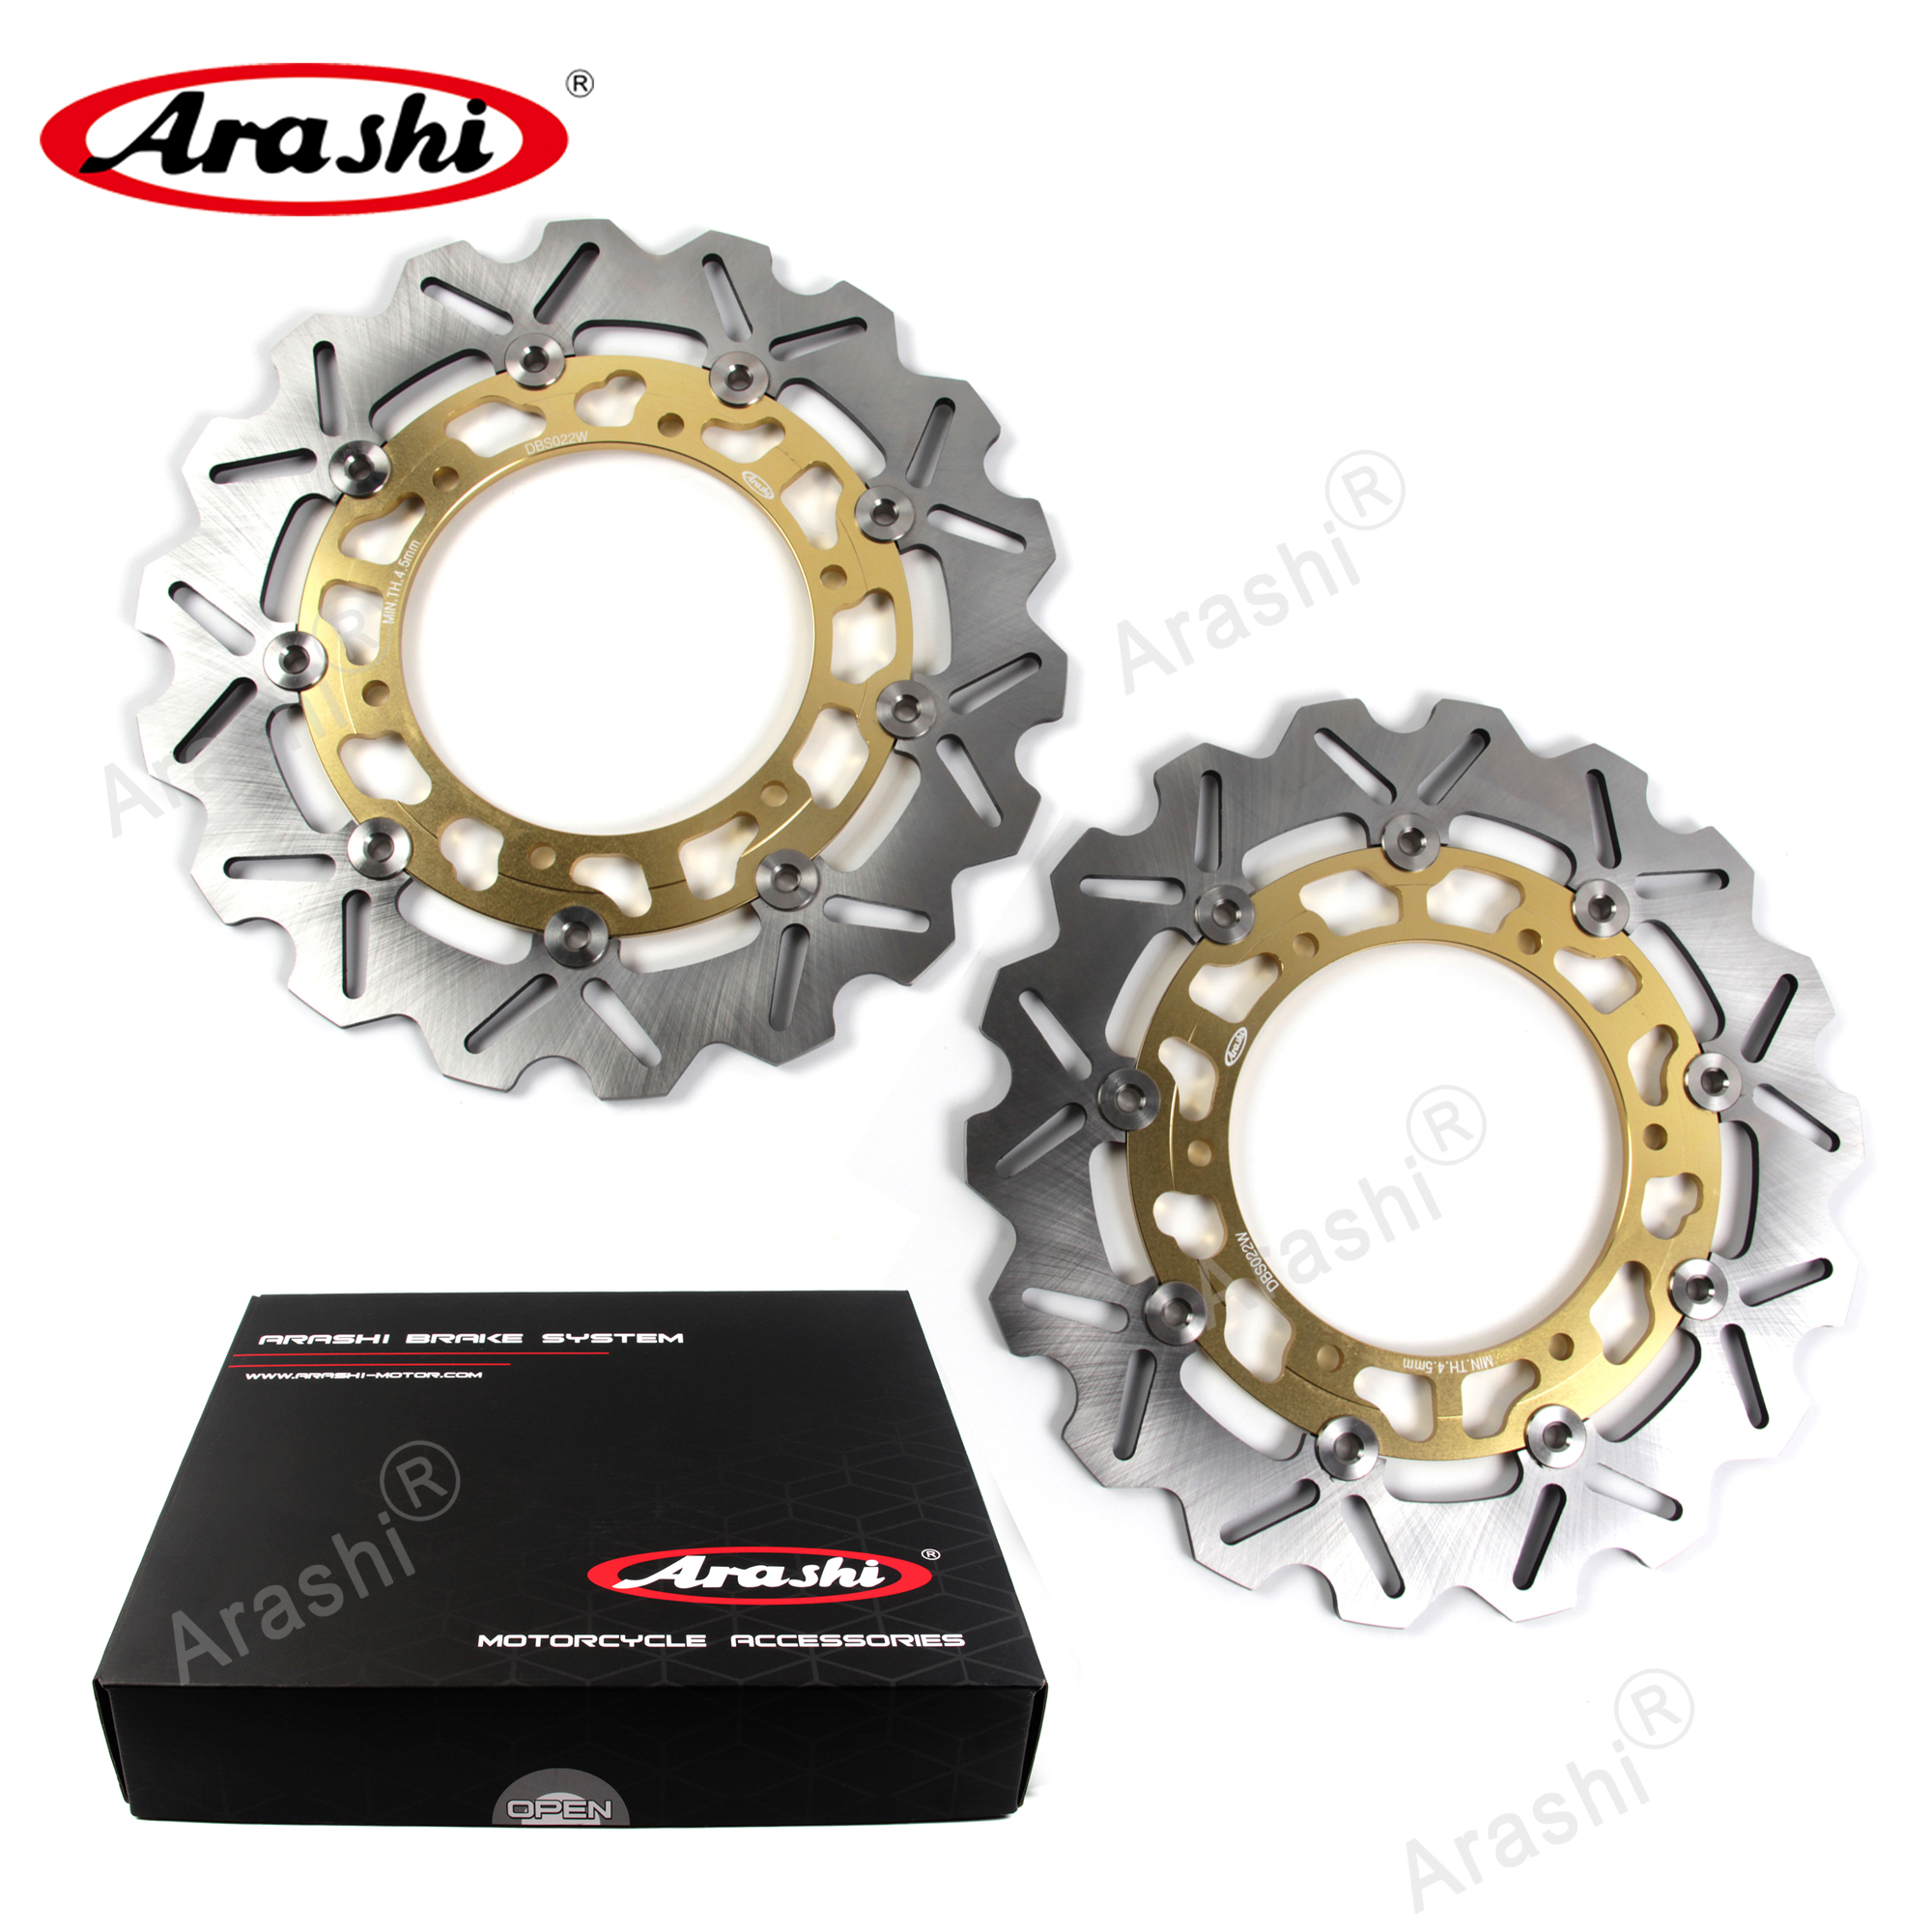 Arashi Front Rear Brake Disc Rotors for YAMAHA YZF R1 2002 2003 Motorcycle Replacement Accessories YZF-R1 Black YZF-R6 R6 1999-2002